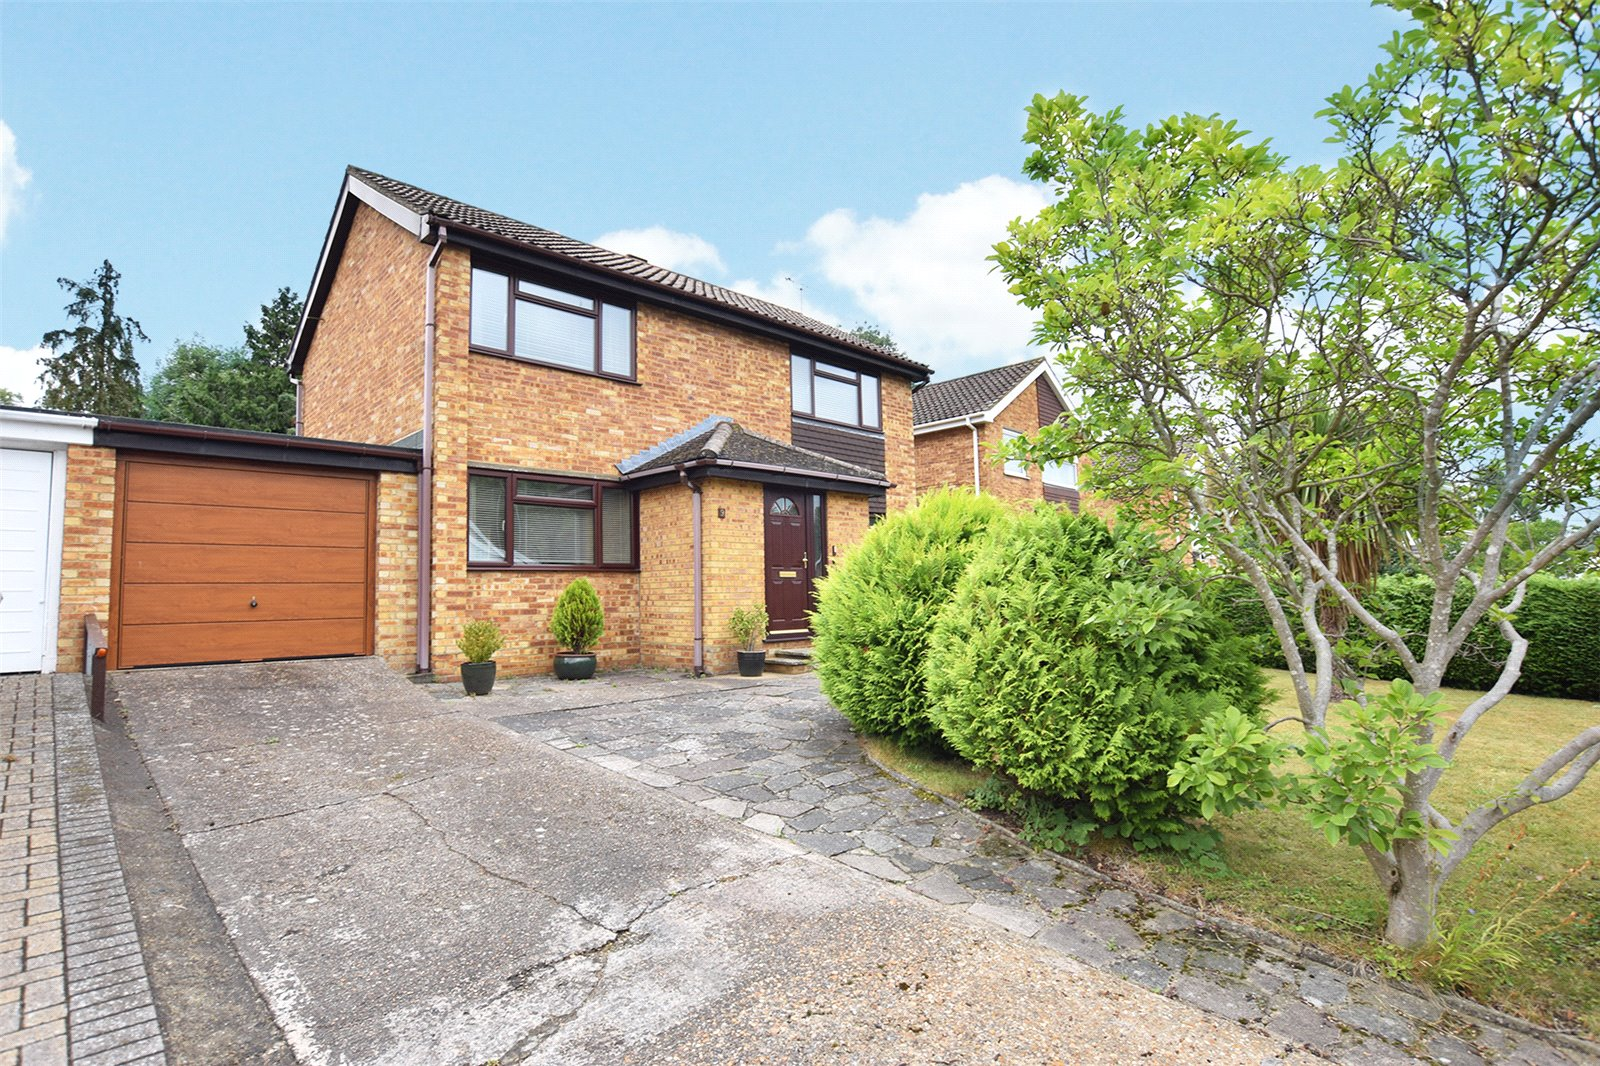 4 Bedrooms Detached House for sale in Spring Meadow, Bracknell, Berkshire, RG12